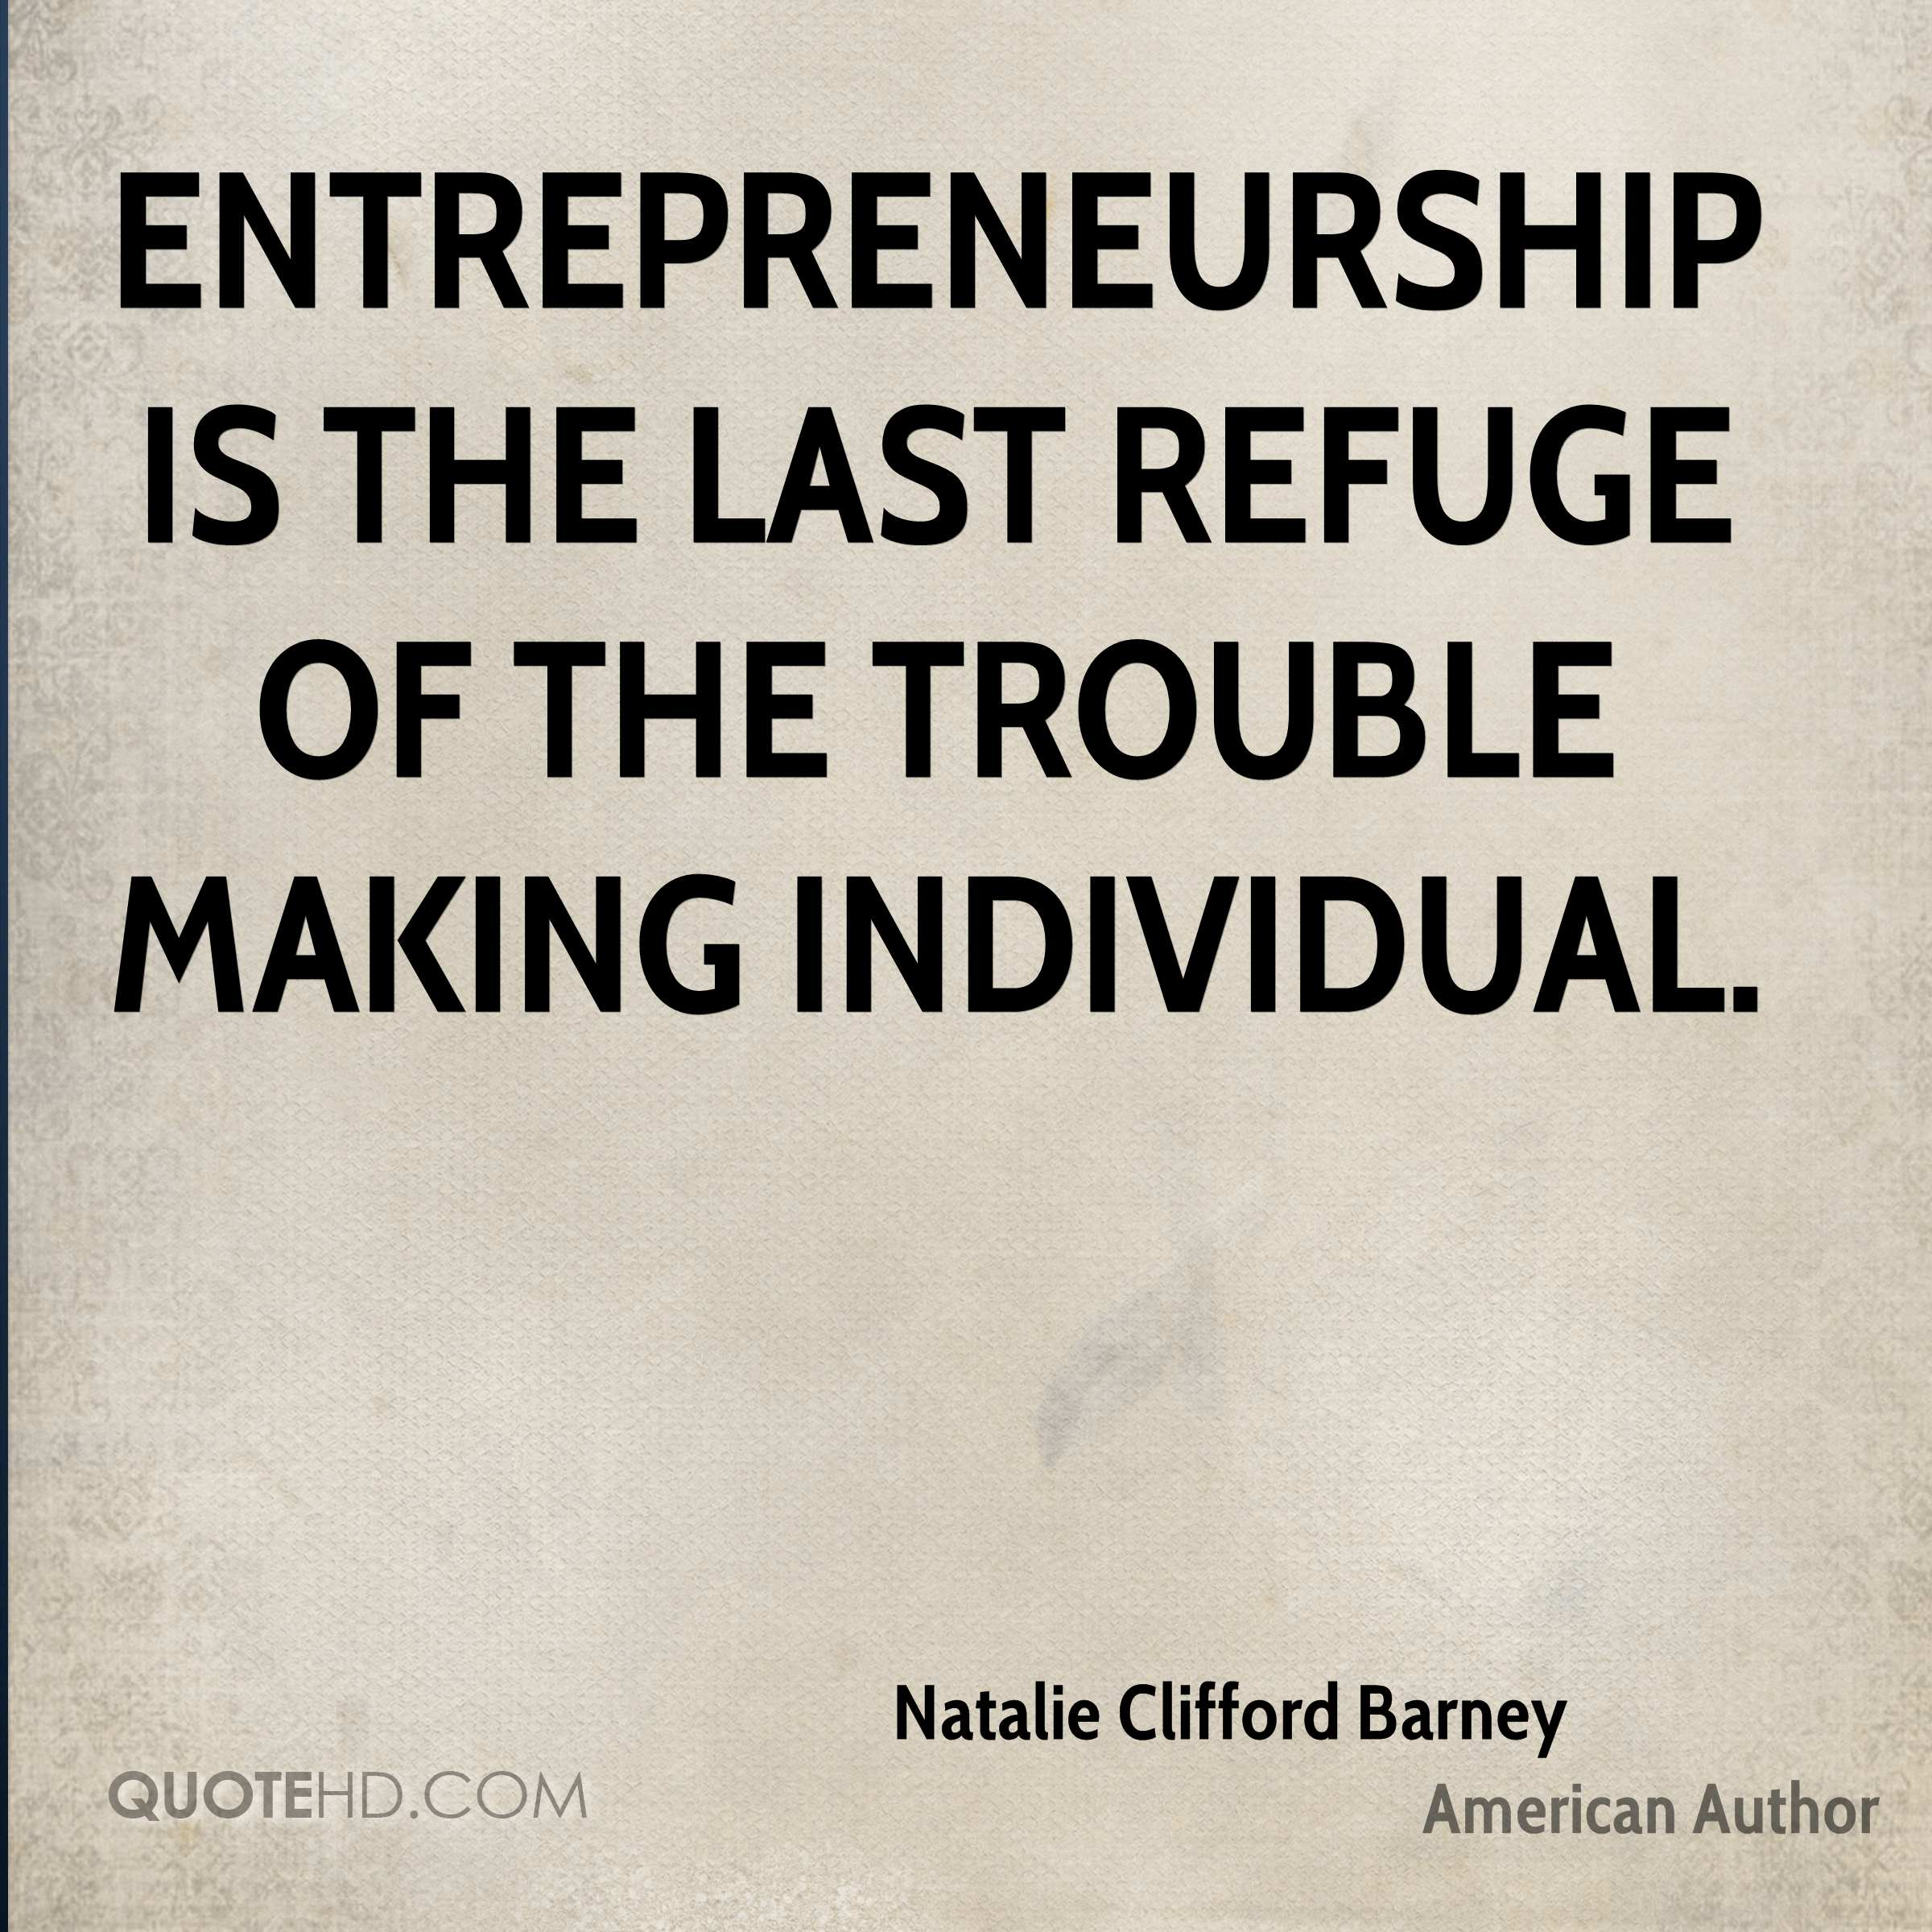 Entrepreneurship Quotes Natalie Clifford Barney Quotes  Quotehd